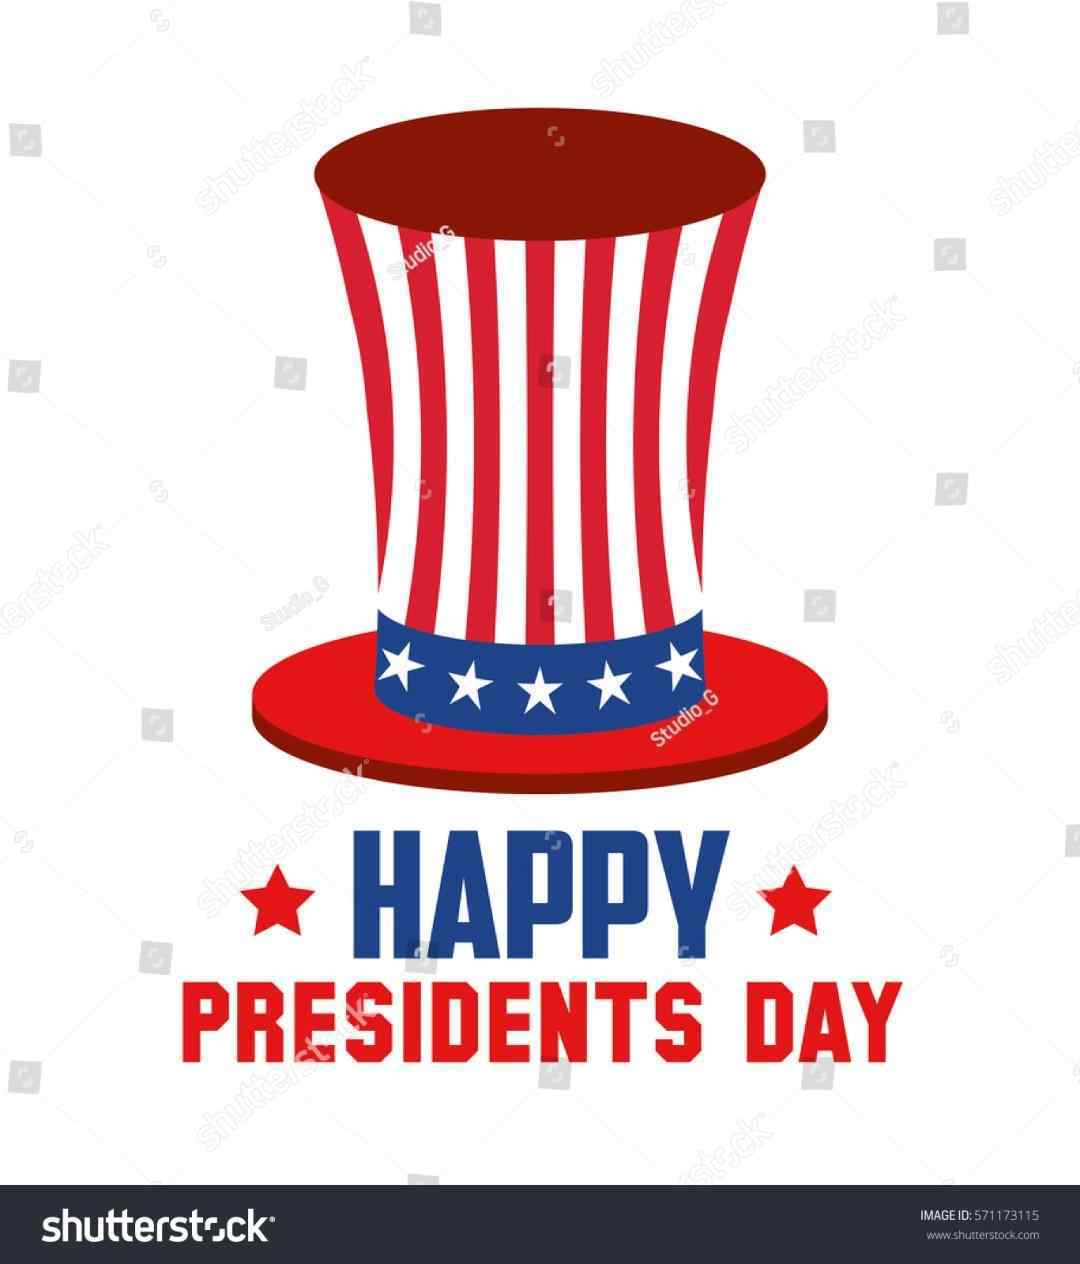 1080x1264 Holiday Cliparts Presidentus Presidents Day Clip Art Free Holiday